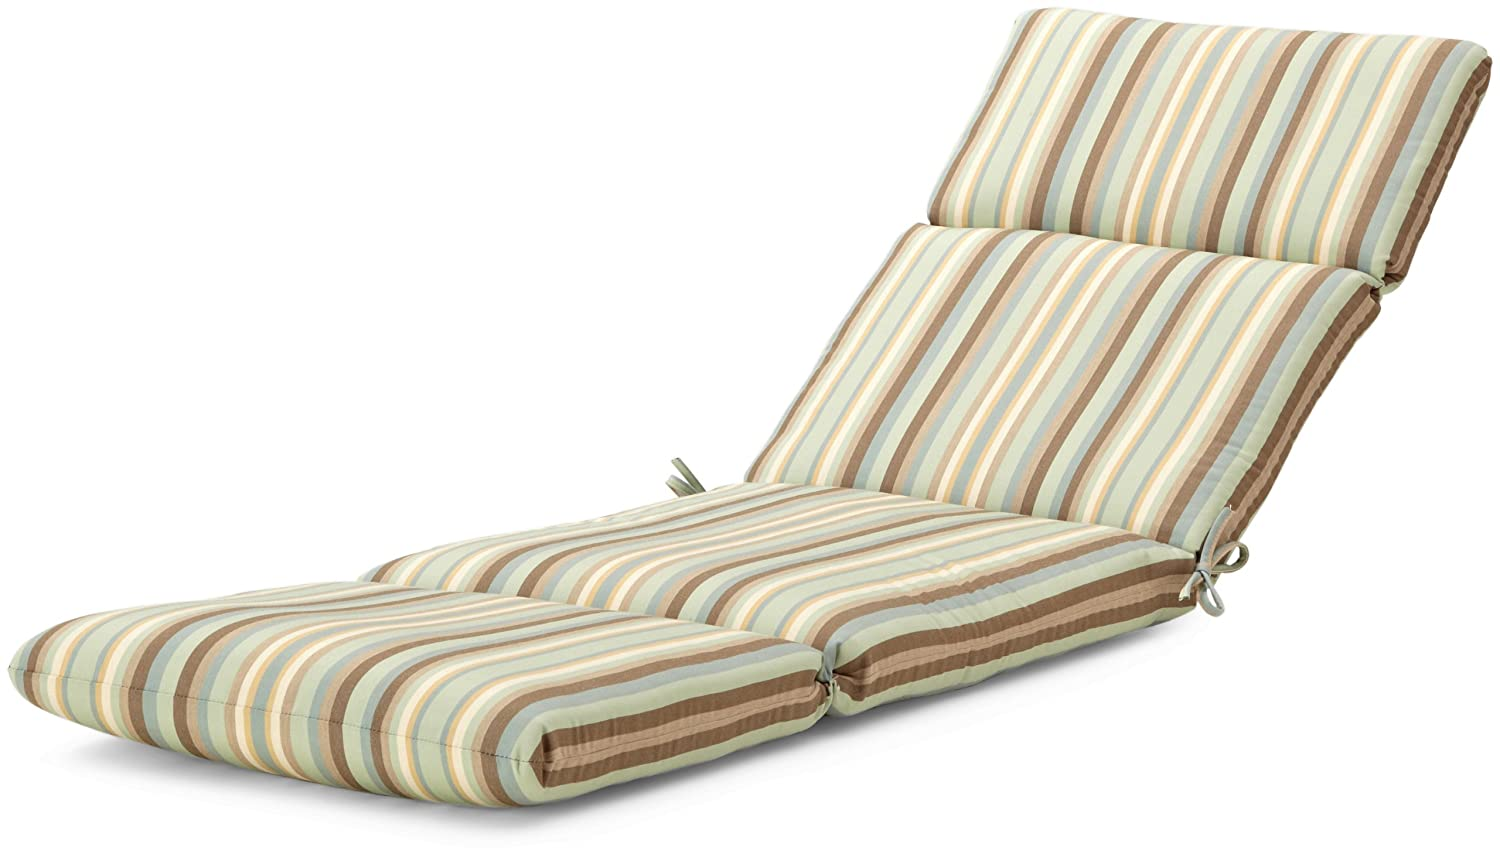 Replacement Cushions For Patio Chairs Strathwood Patio Furniture Replacement Cushions